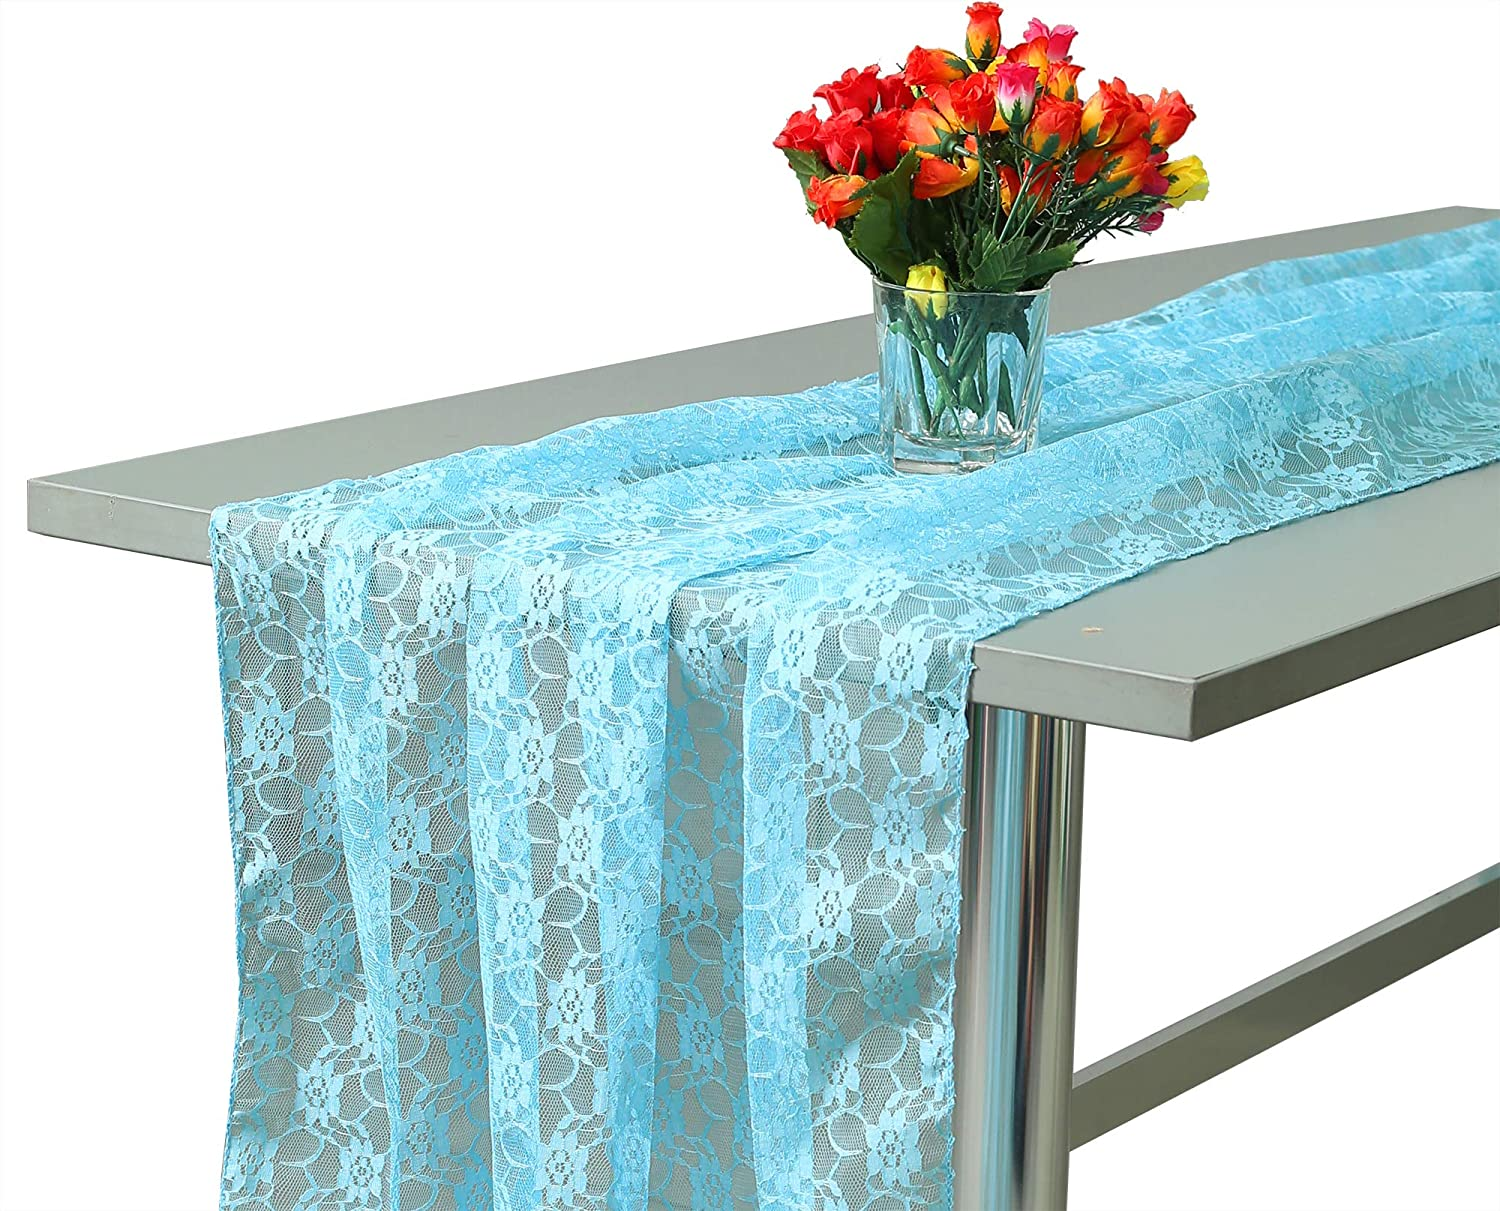 mds Pack of Max 59% OFF 25Wedding 27 x Max 75% OFF 170 Weddin for Runner Table inch Lace